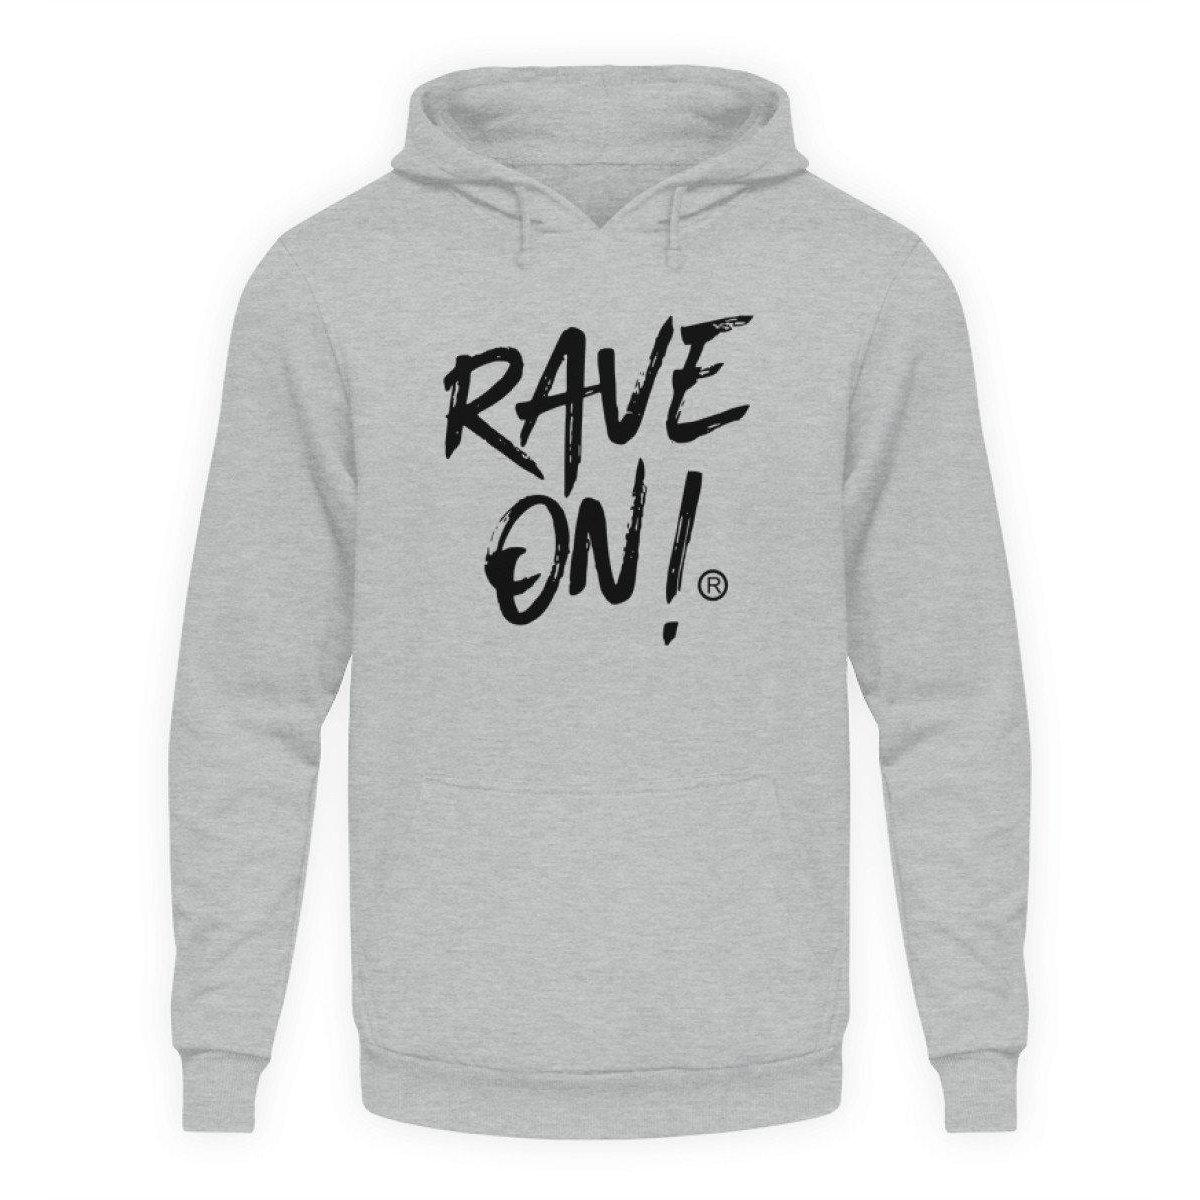 Rave On!® Light Collection - Unisex Hooded Sweater Hoodie Unisex Hoodie Sport gray Heather / L - Rave On!® the club & techno scene shop for cool young fashion streetwear style & fashion outfits + sexy festival 420 stuff